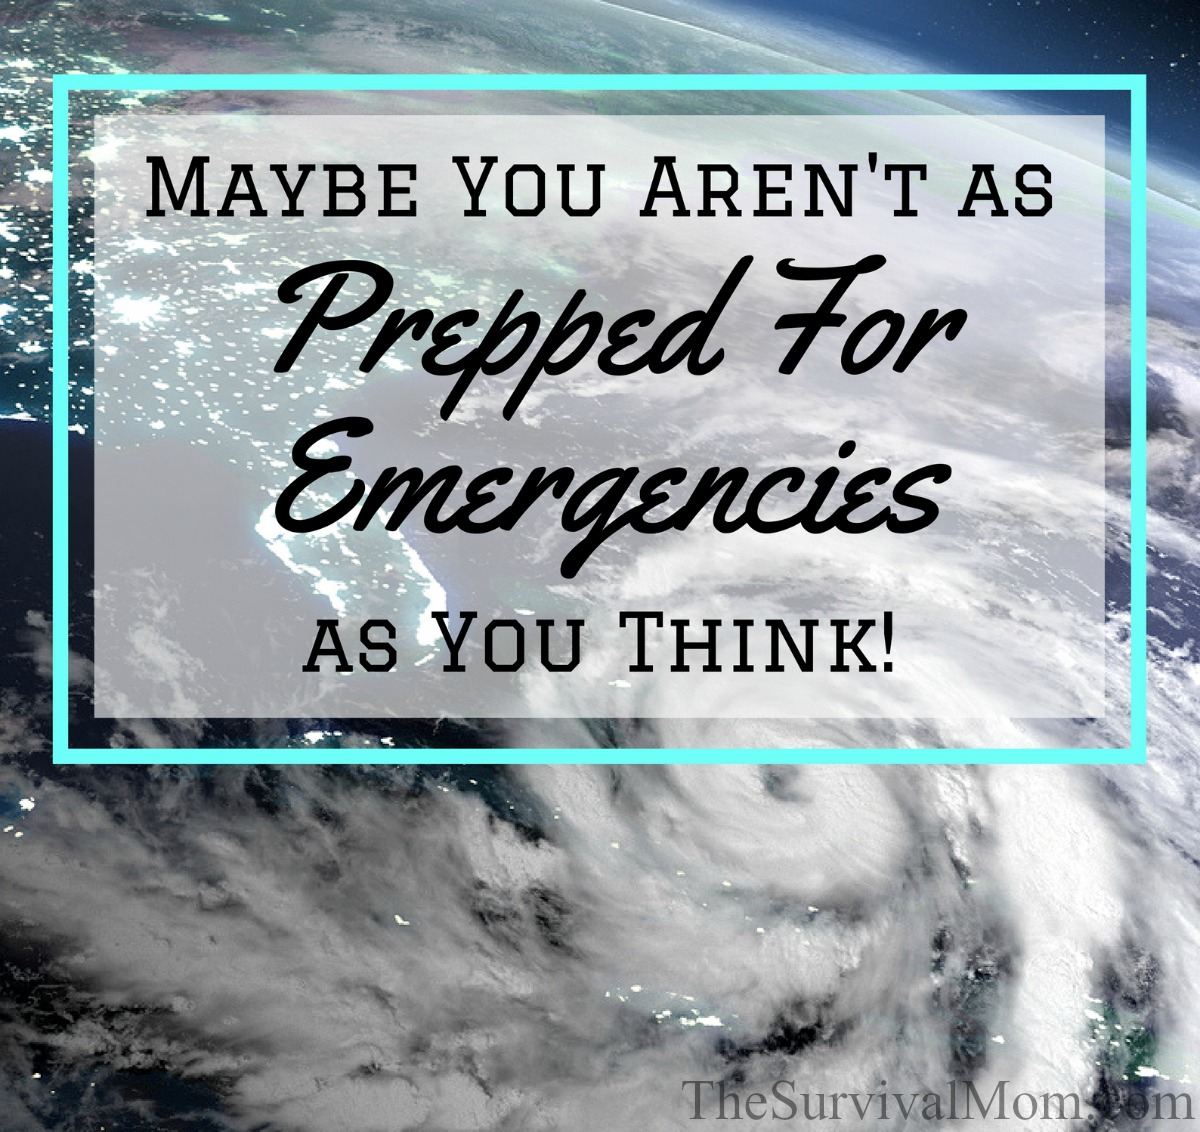 Maybe You Aren't as Prepped For Emergencies as You Think via The Survival Mom